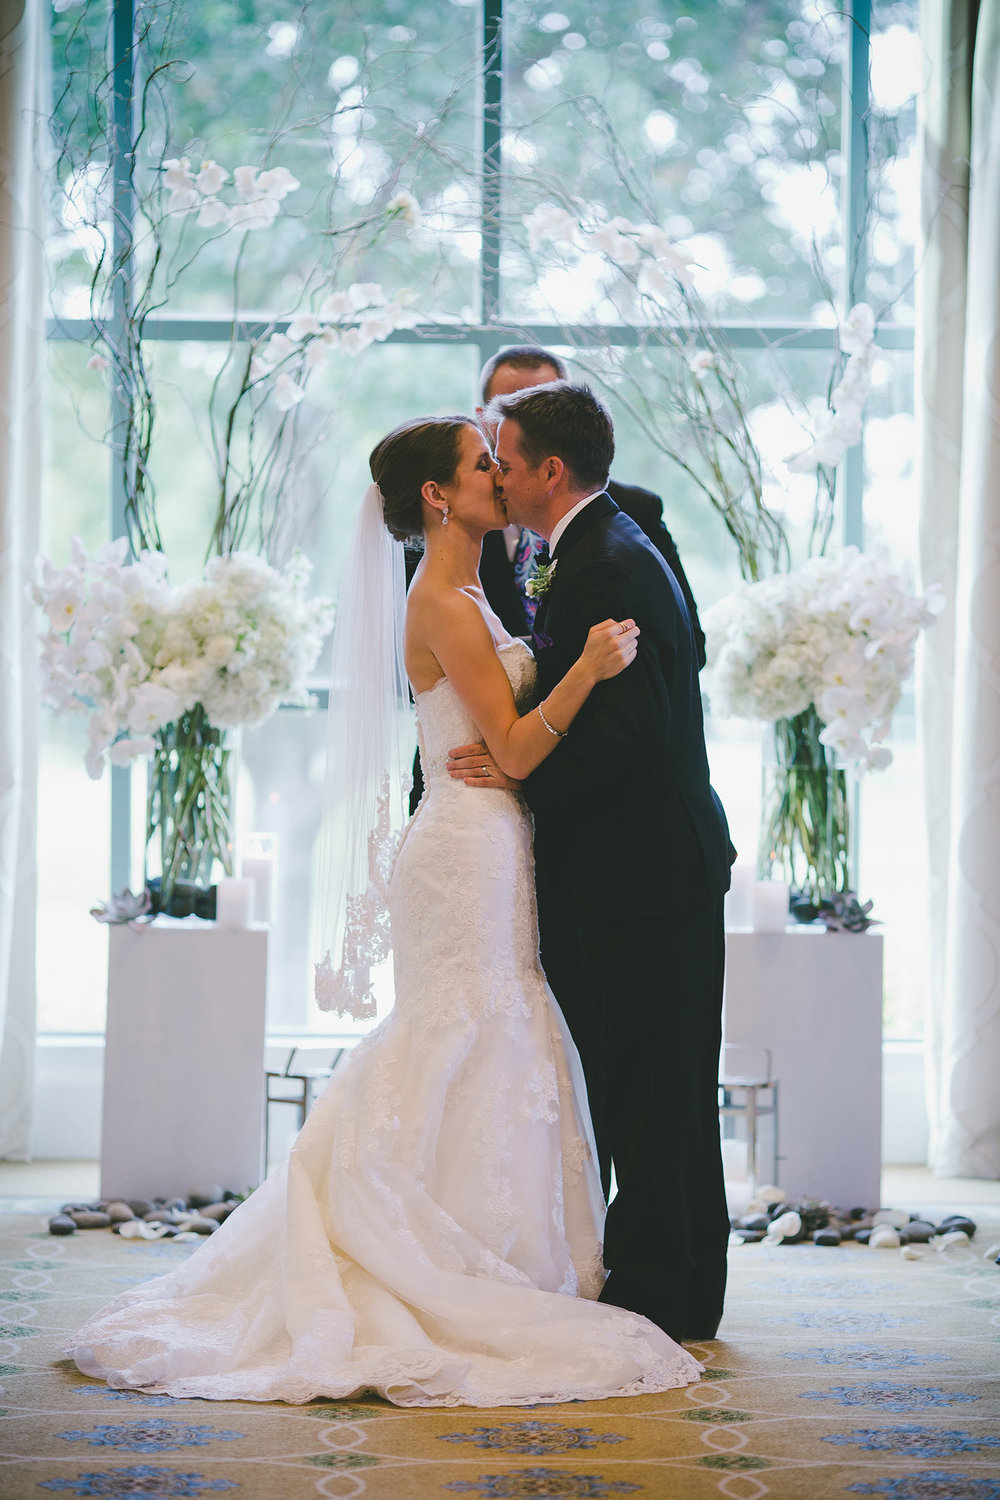 River Crest Country Club ceremony in front of large windows with a white flower and branch archway wih bride and groom kissing